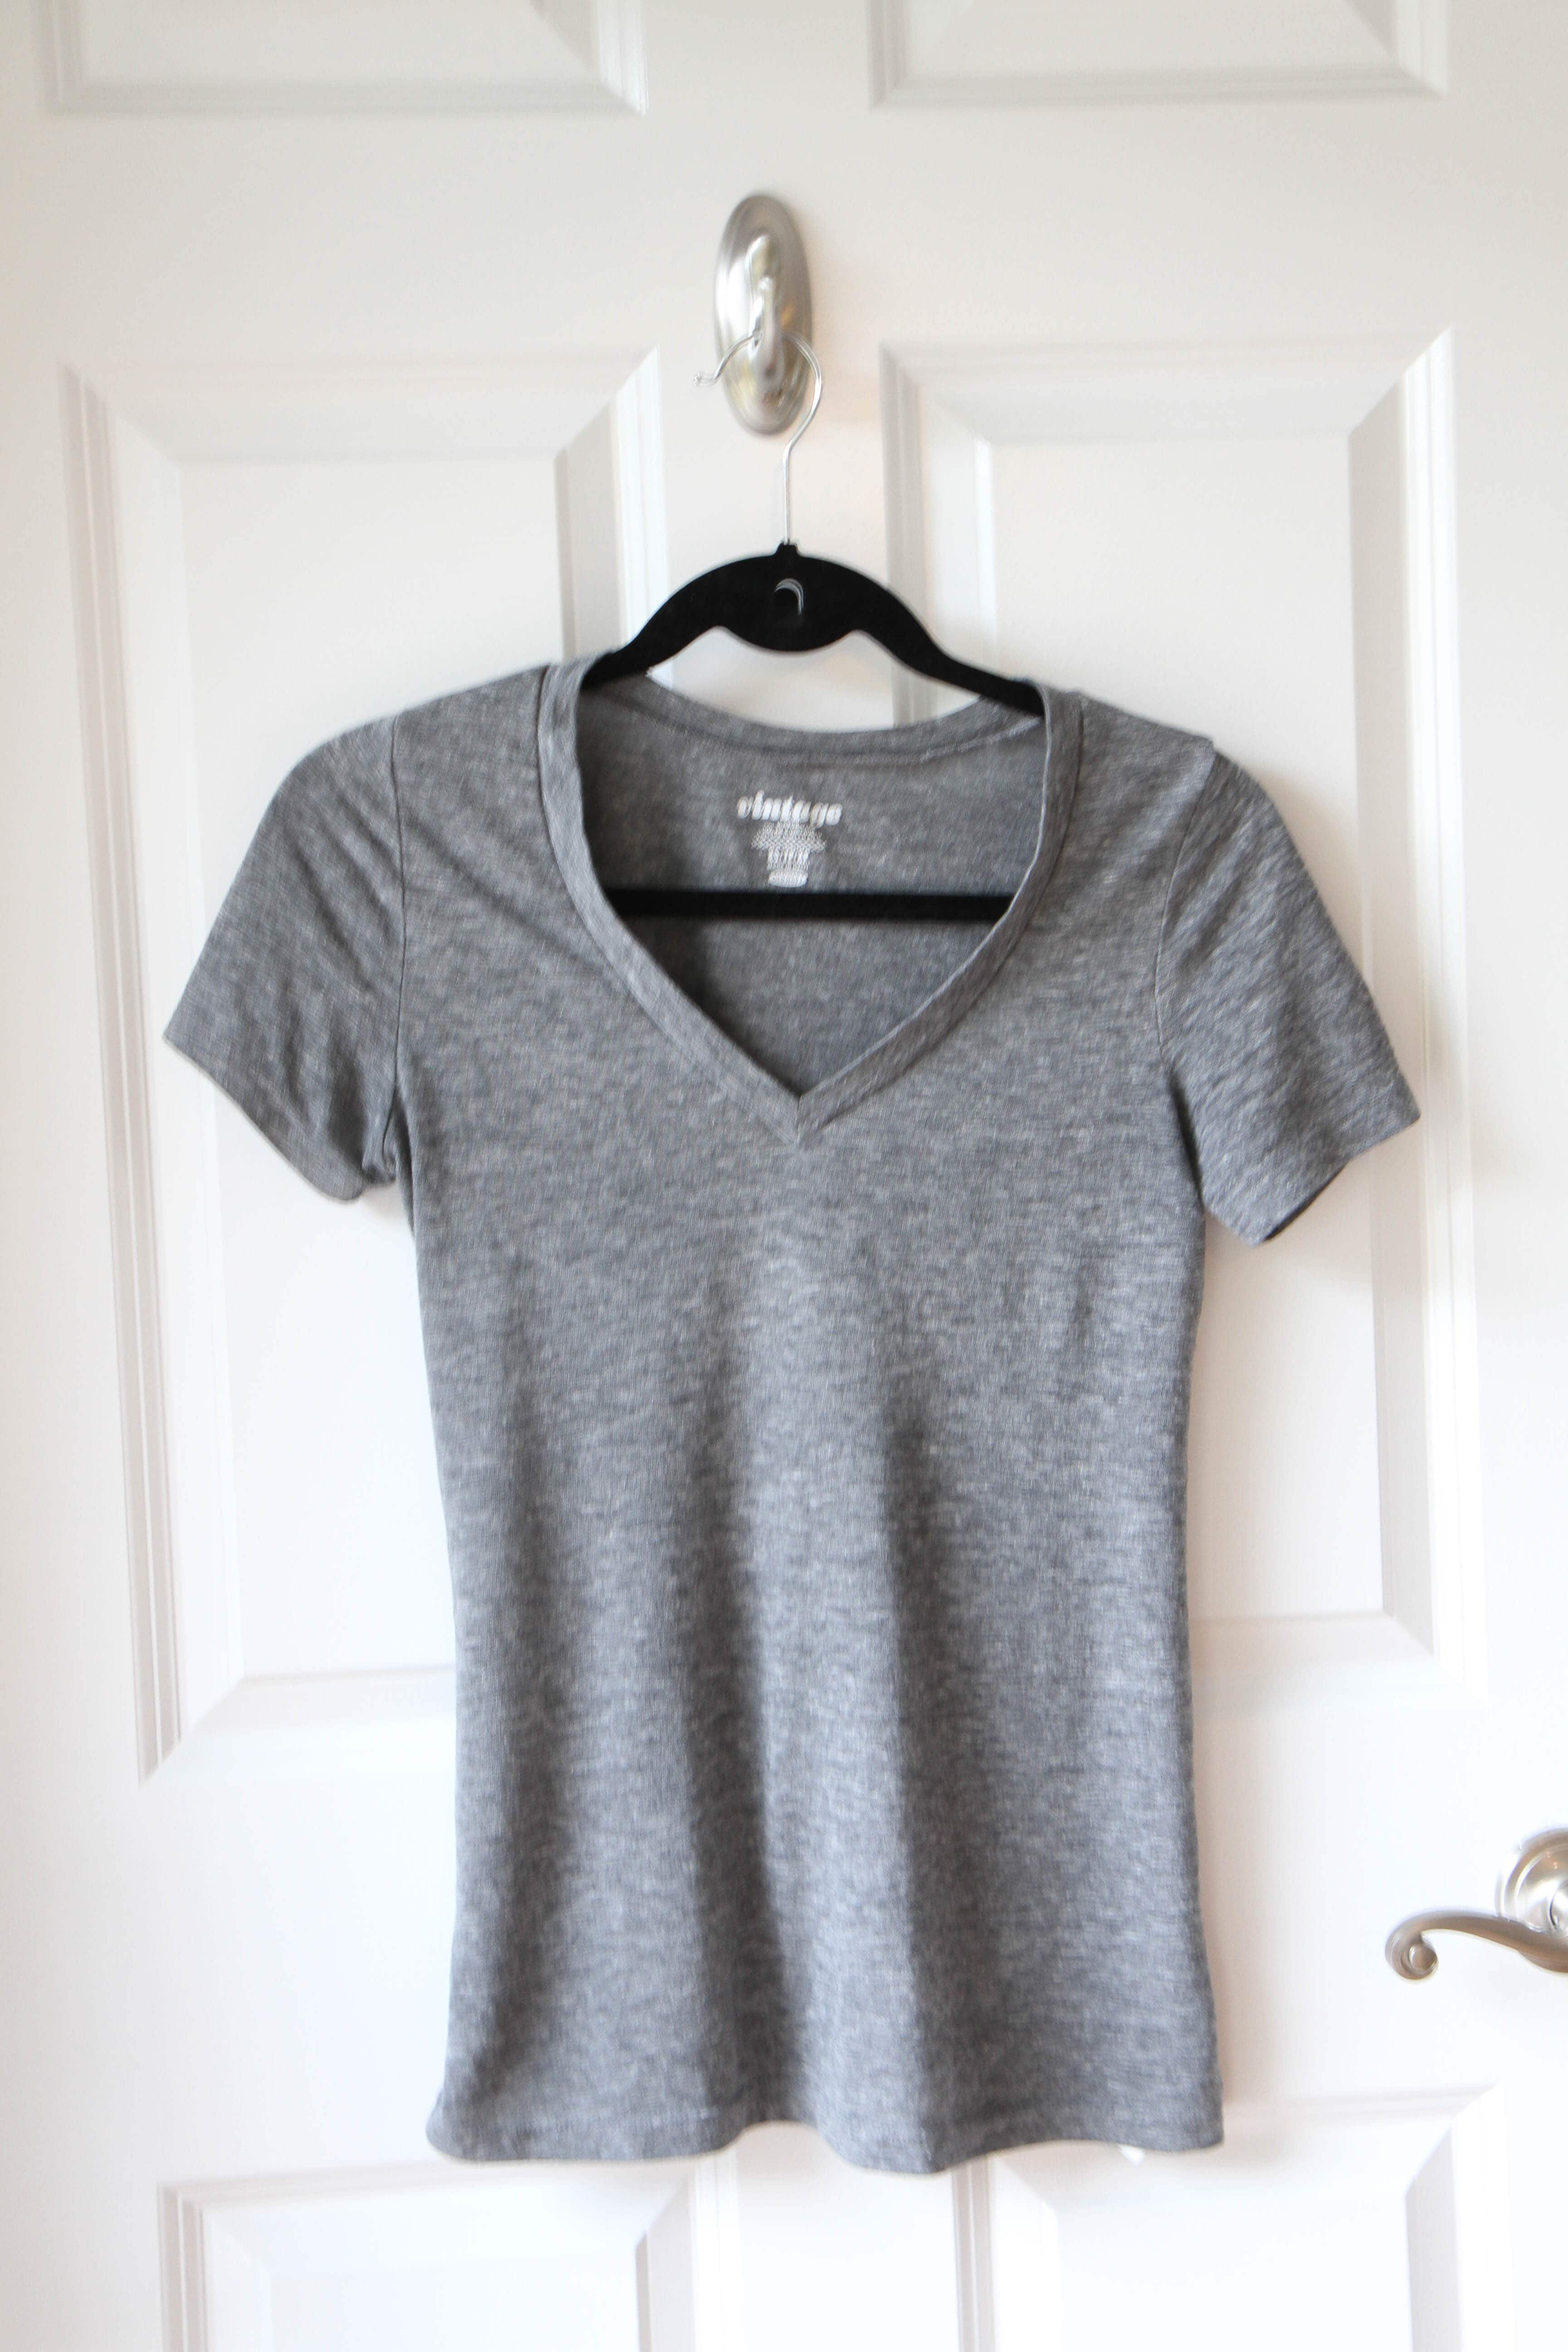 Winter 2014 Fashion Capsule Wardrobe Project